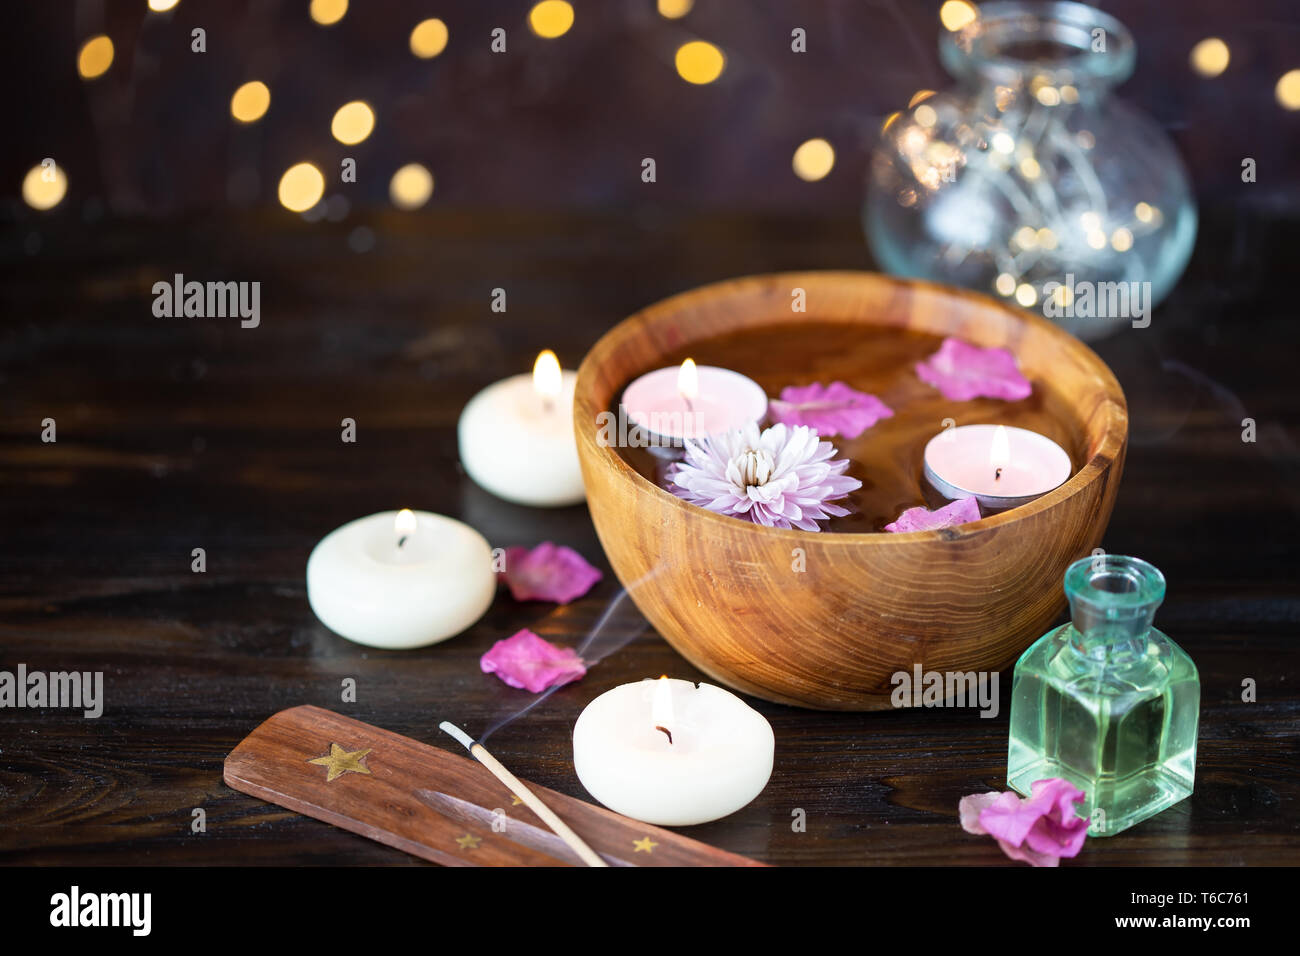 Relax Fh Rt Wellness Spa Relax Water Petals Health Concept Relaxation Stock